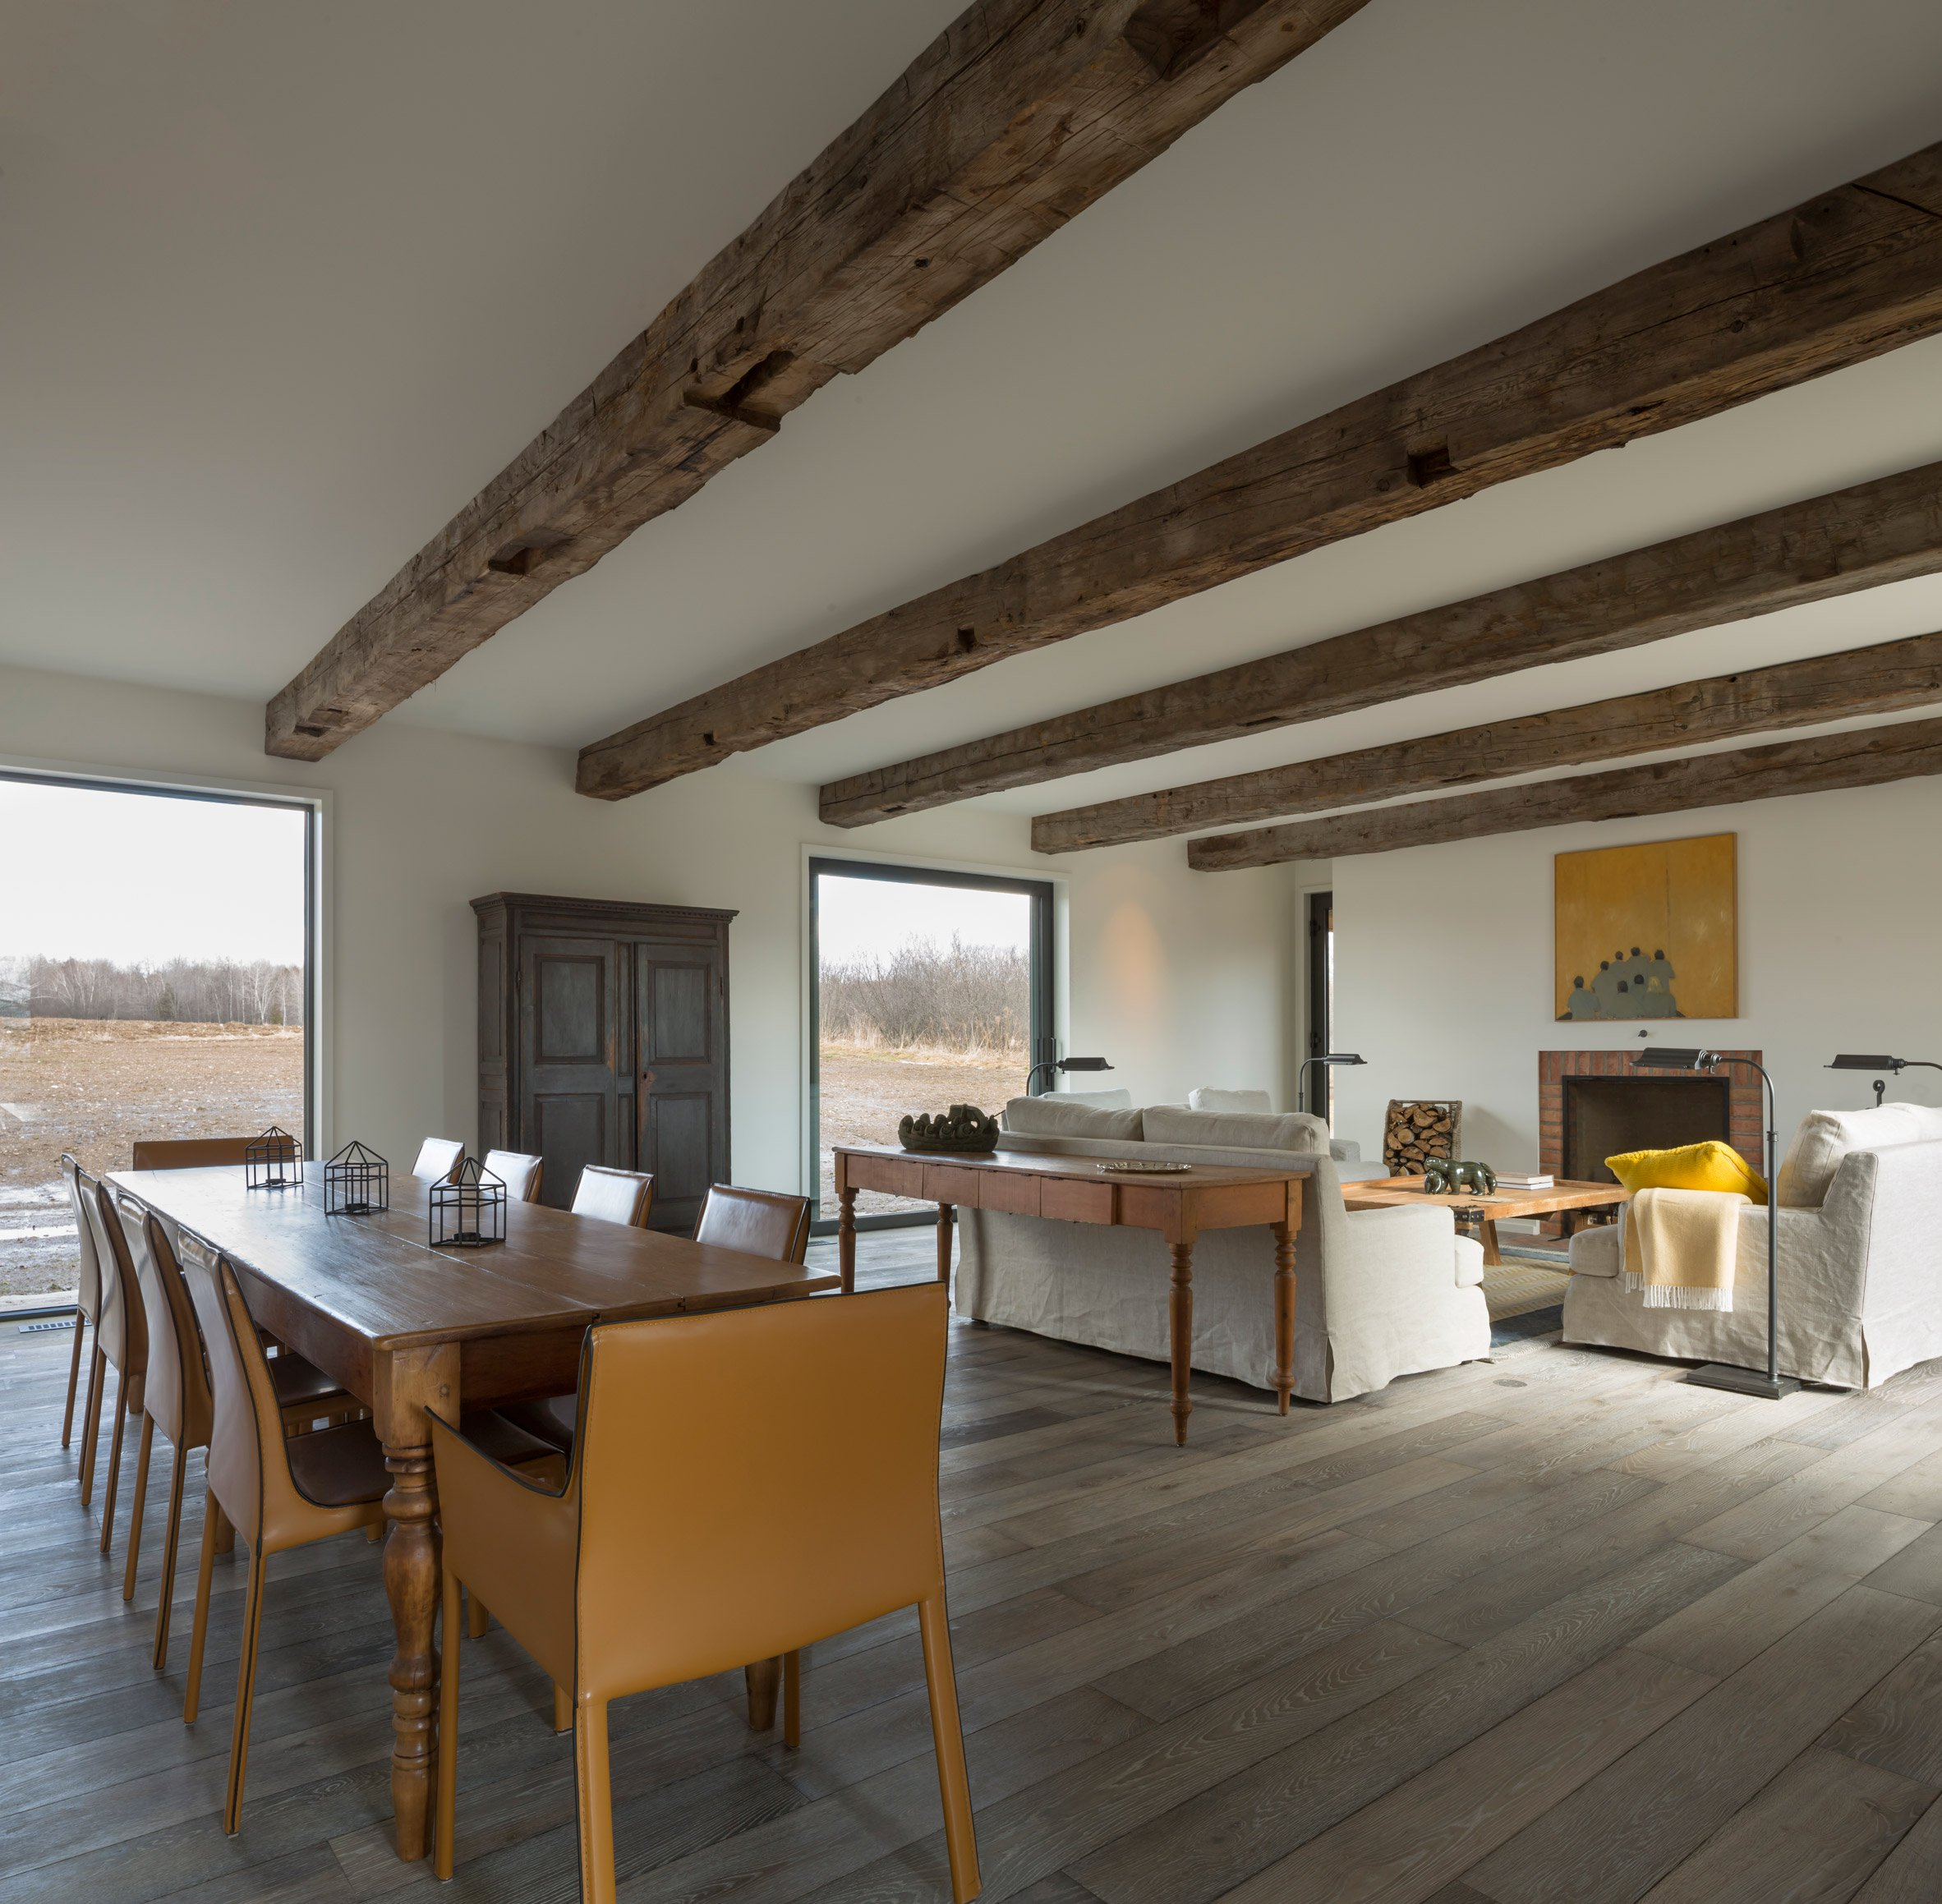 modern farmhouse updates the canadian homestead curbed where the exterior is clad in gray reclaimed wood from rundown barns in ontario the interiors are bright and modern with white walls vaulted ceilings or